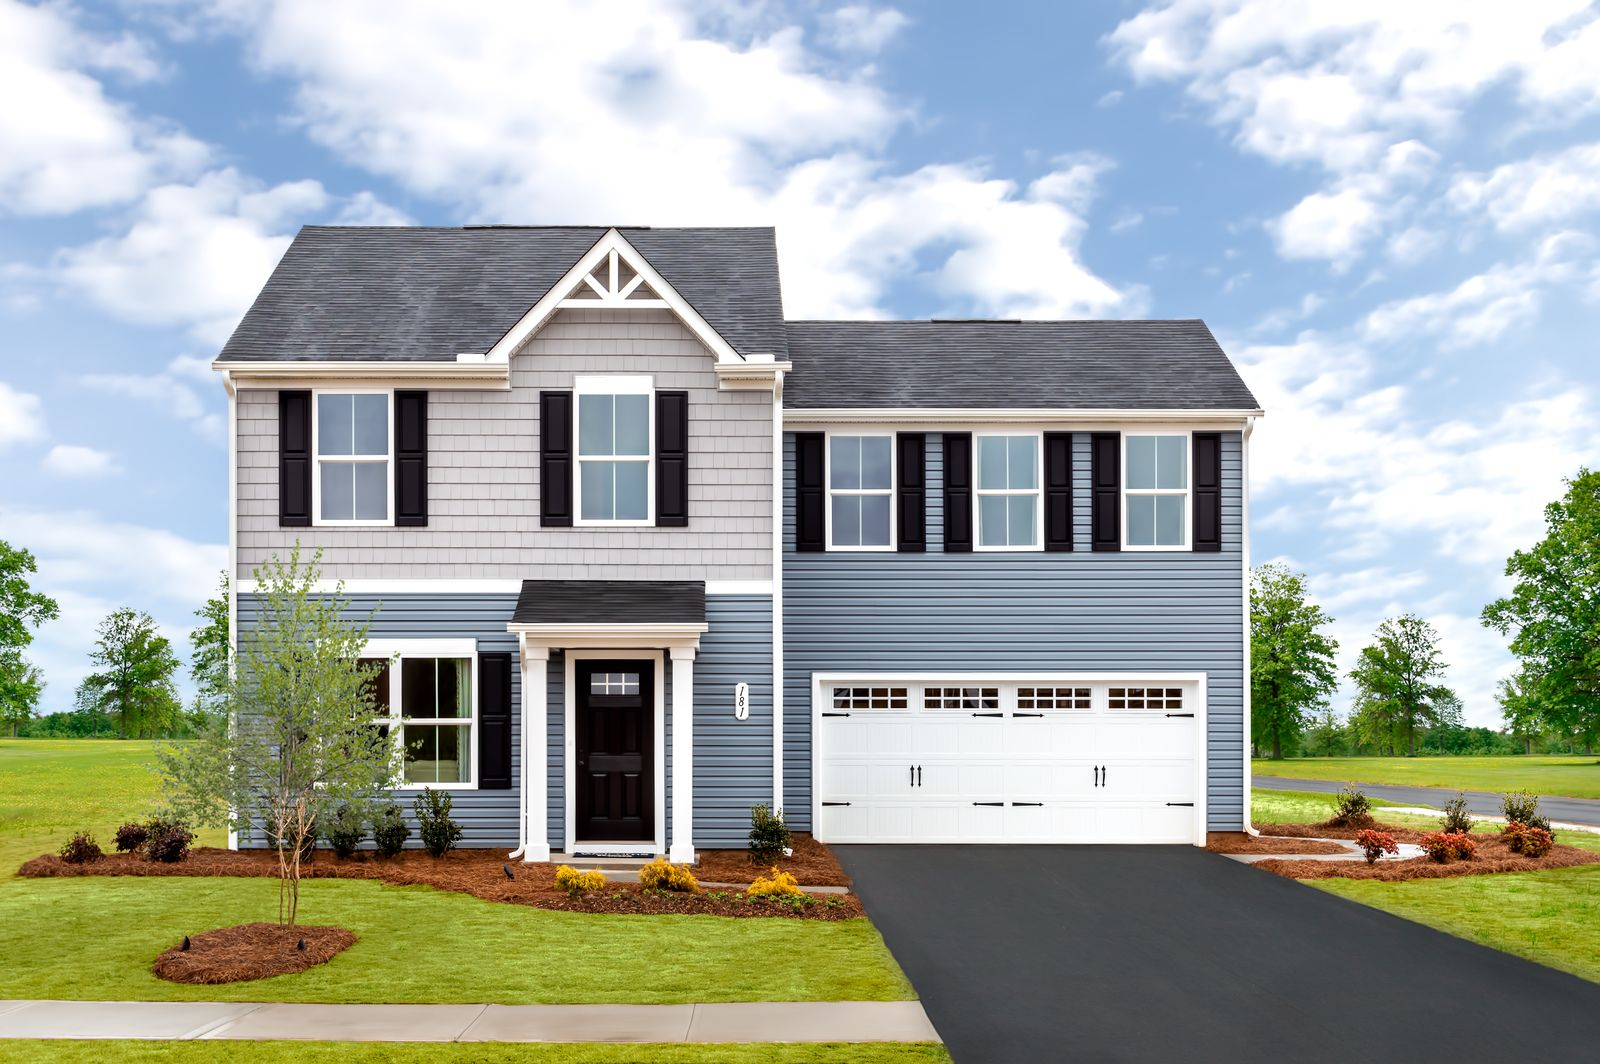 AFFORDABLE SINGLE FAMILY HOMES WITH AMENITIES:Lowest priced new single family homes in Spring Mills school district, 1 mile off I-81. From theMid $200s. Opening to VIPsSpring2021.Join the VIP List Now.